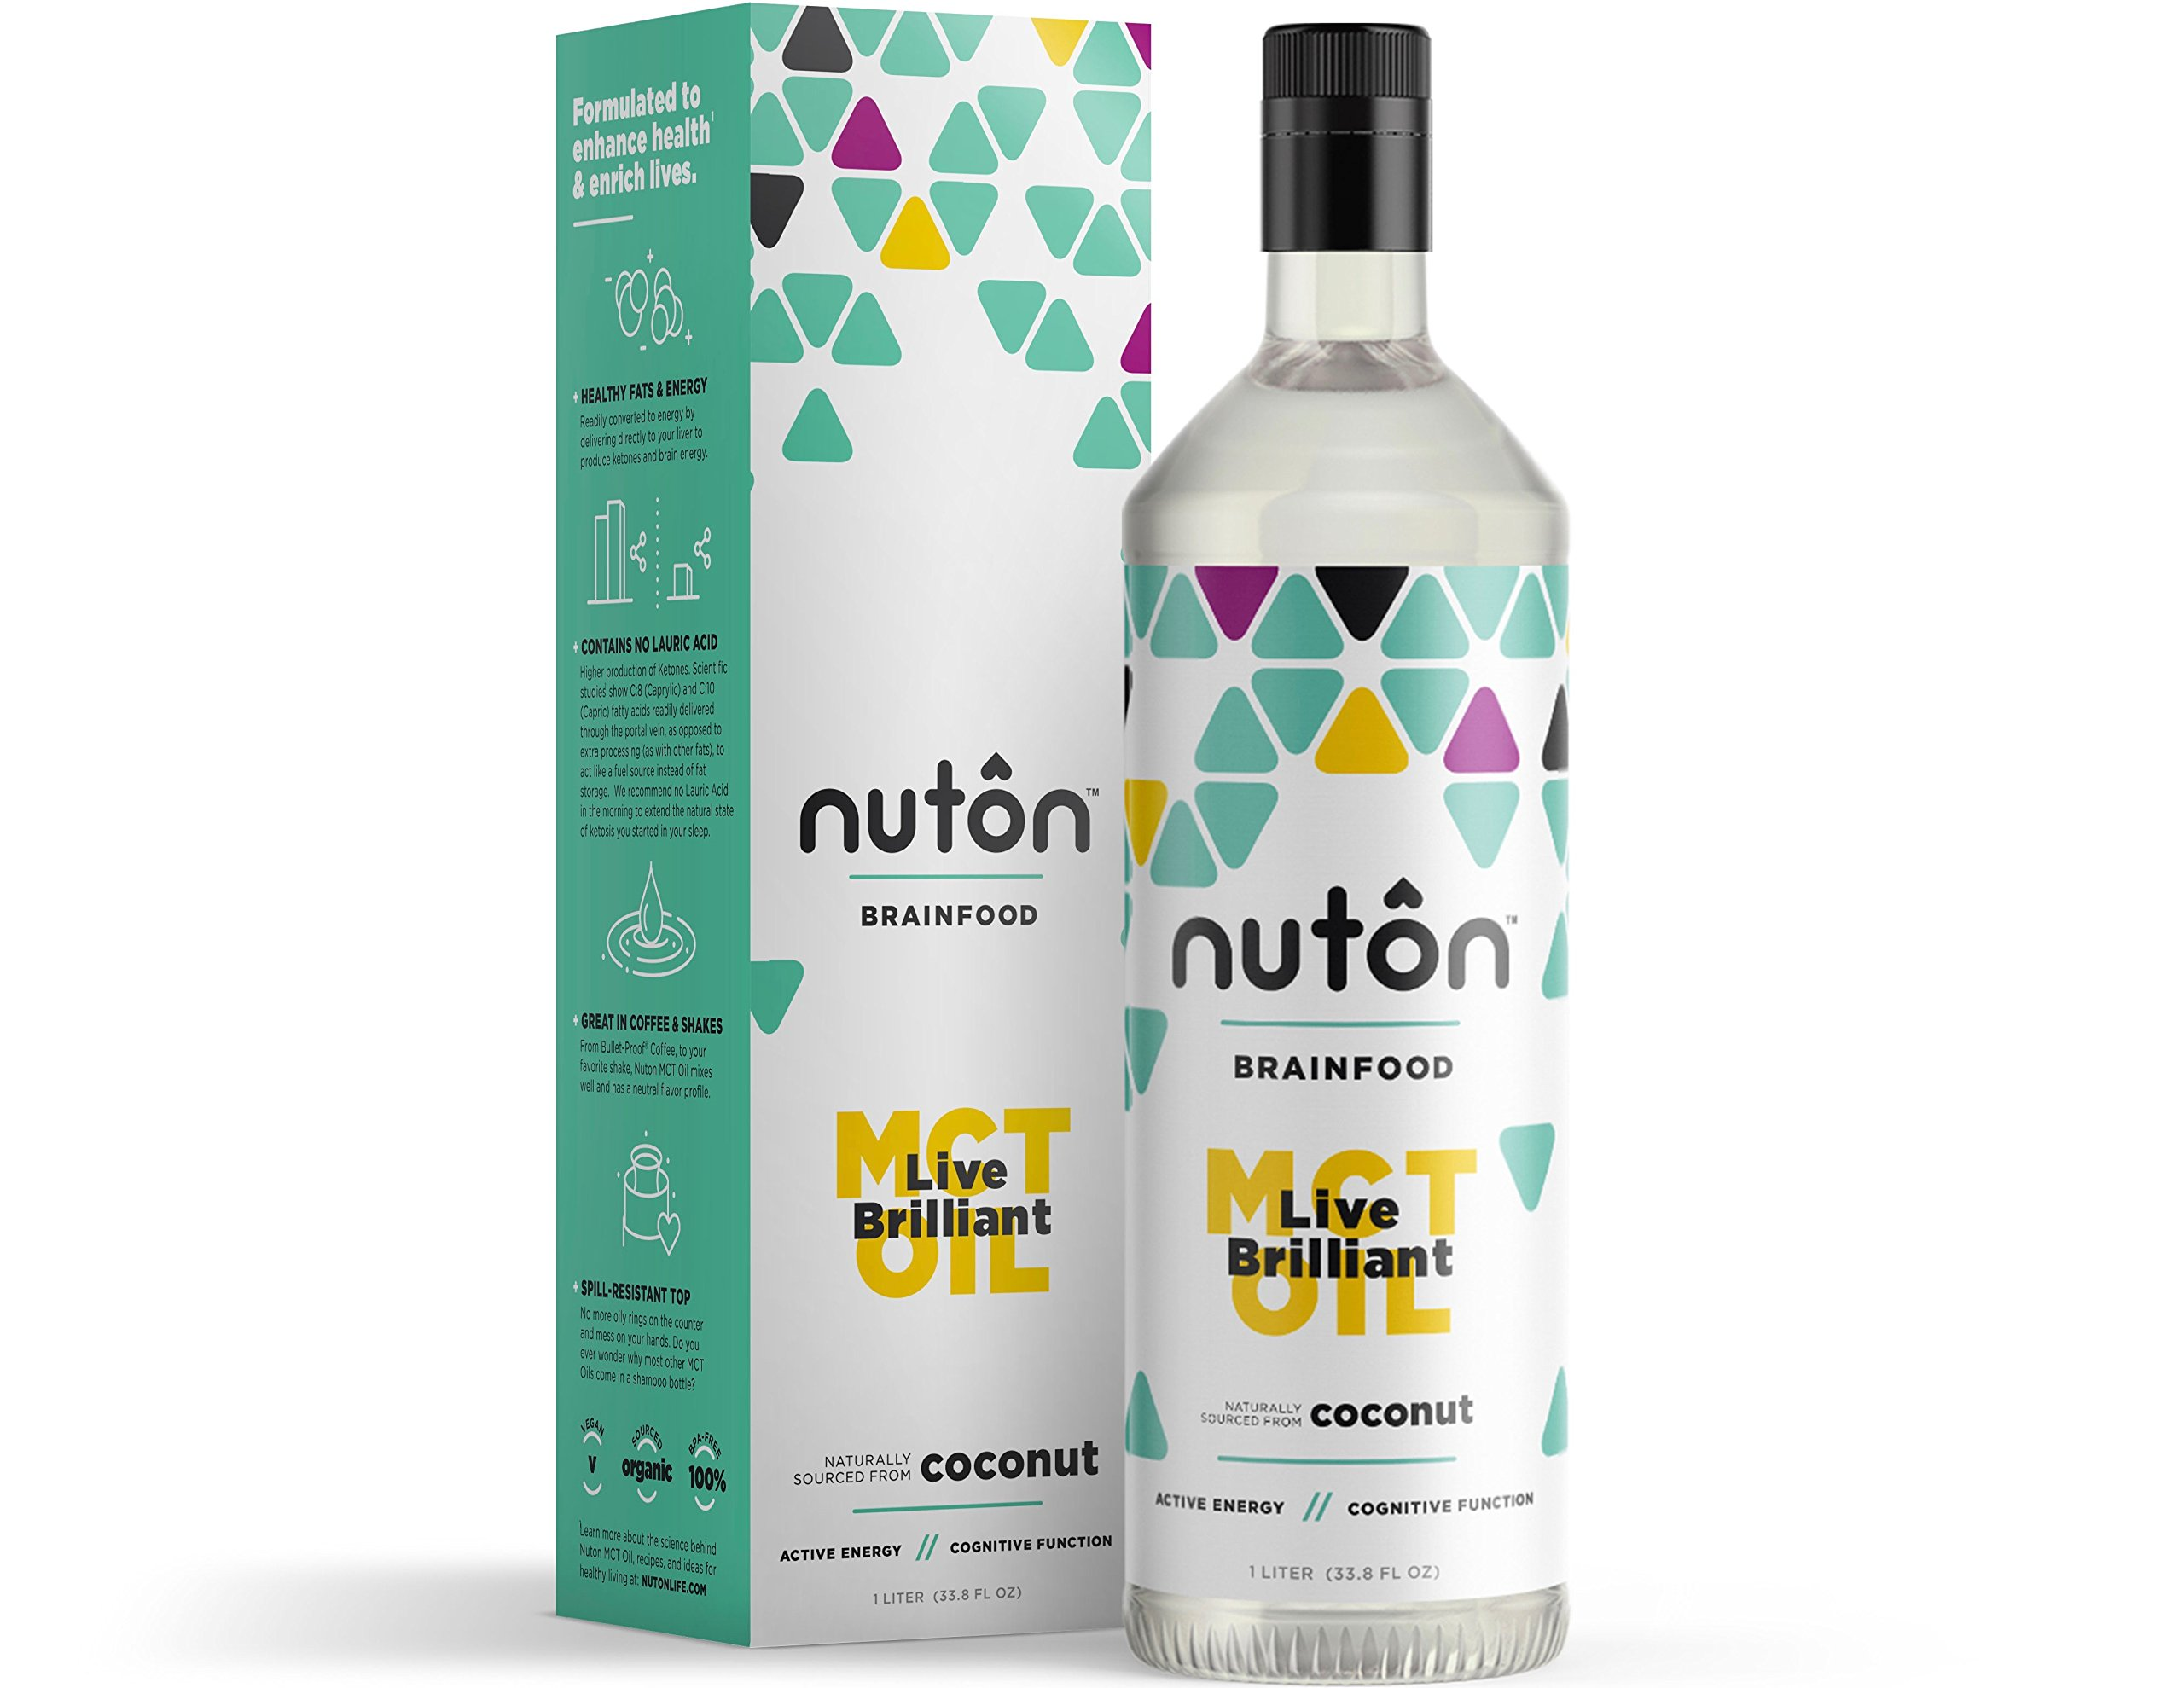 Ultra Premium MCT Oil by Nuton, C8 and C10 only Blend from Organic Coconuts - 33.8oz (1 Liter) | No C12 (Lauric Acid), Great for Keto Diet and Morning Coffee | Keto and Paleo Certified